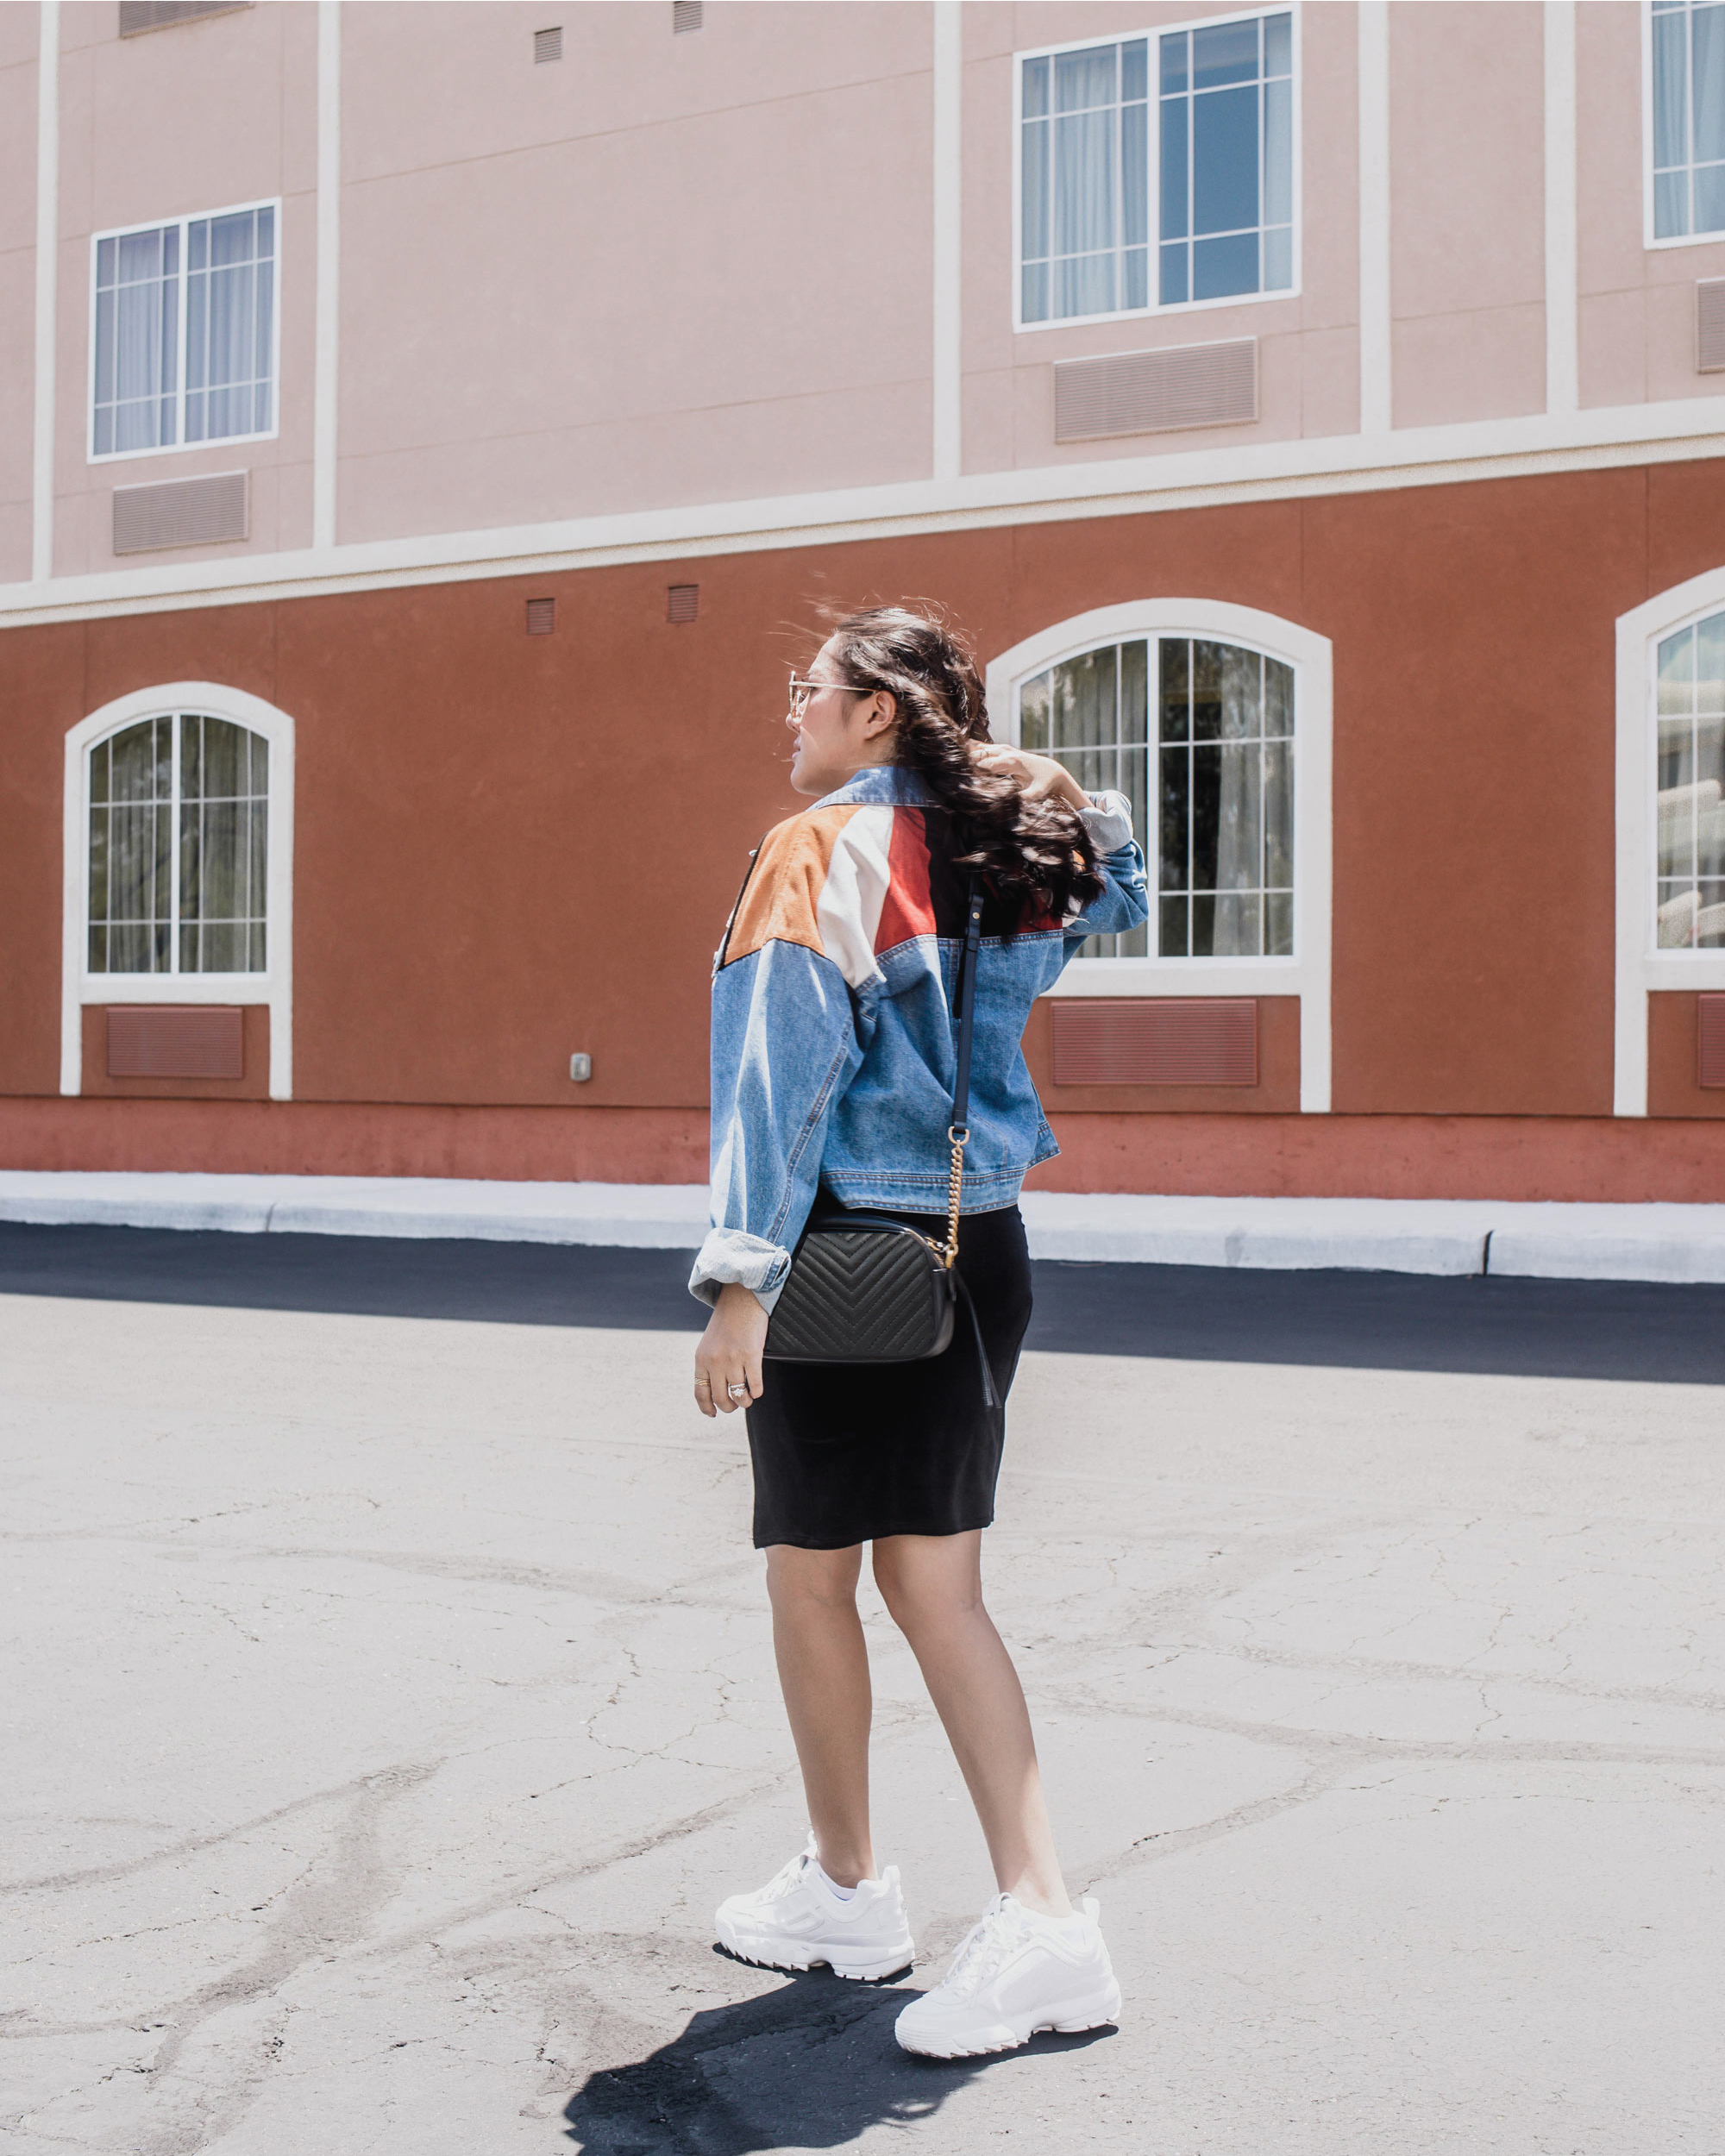 How-to-make-your-NWFW-chic-and-comfortable-with-Dr.-Scholl's-Stylish-Step_allaboutgoodvibes.com_Denim jacket and sneakers outfit idea